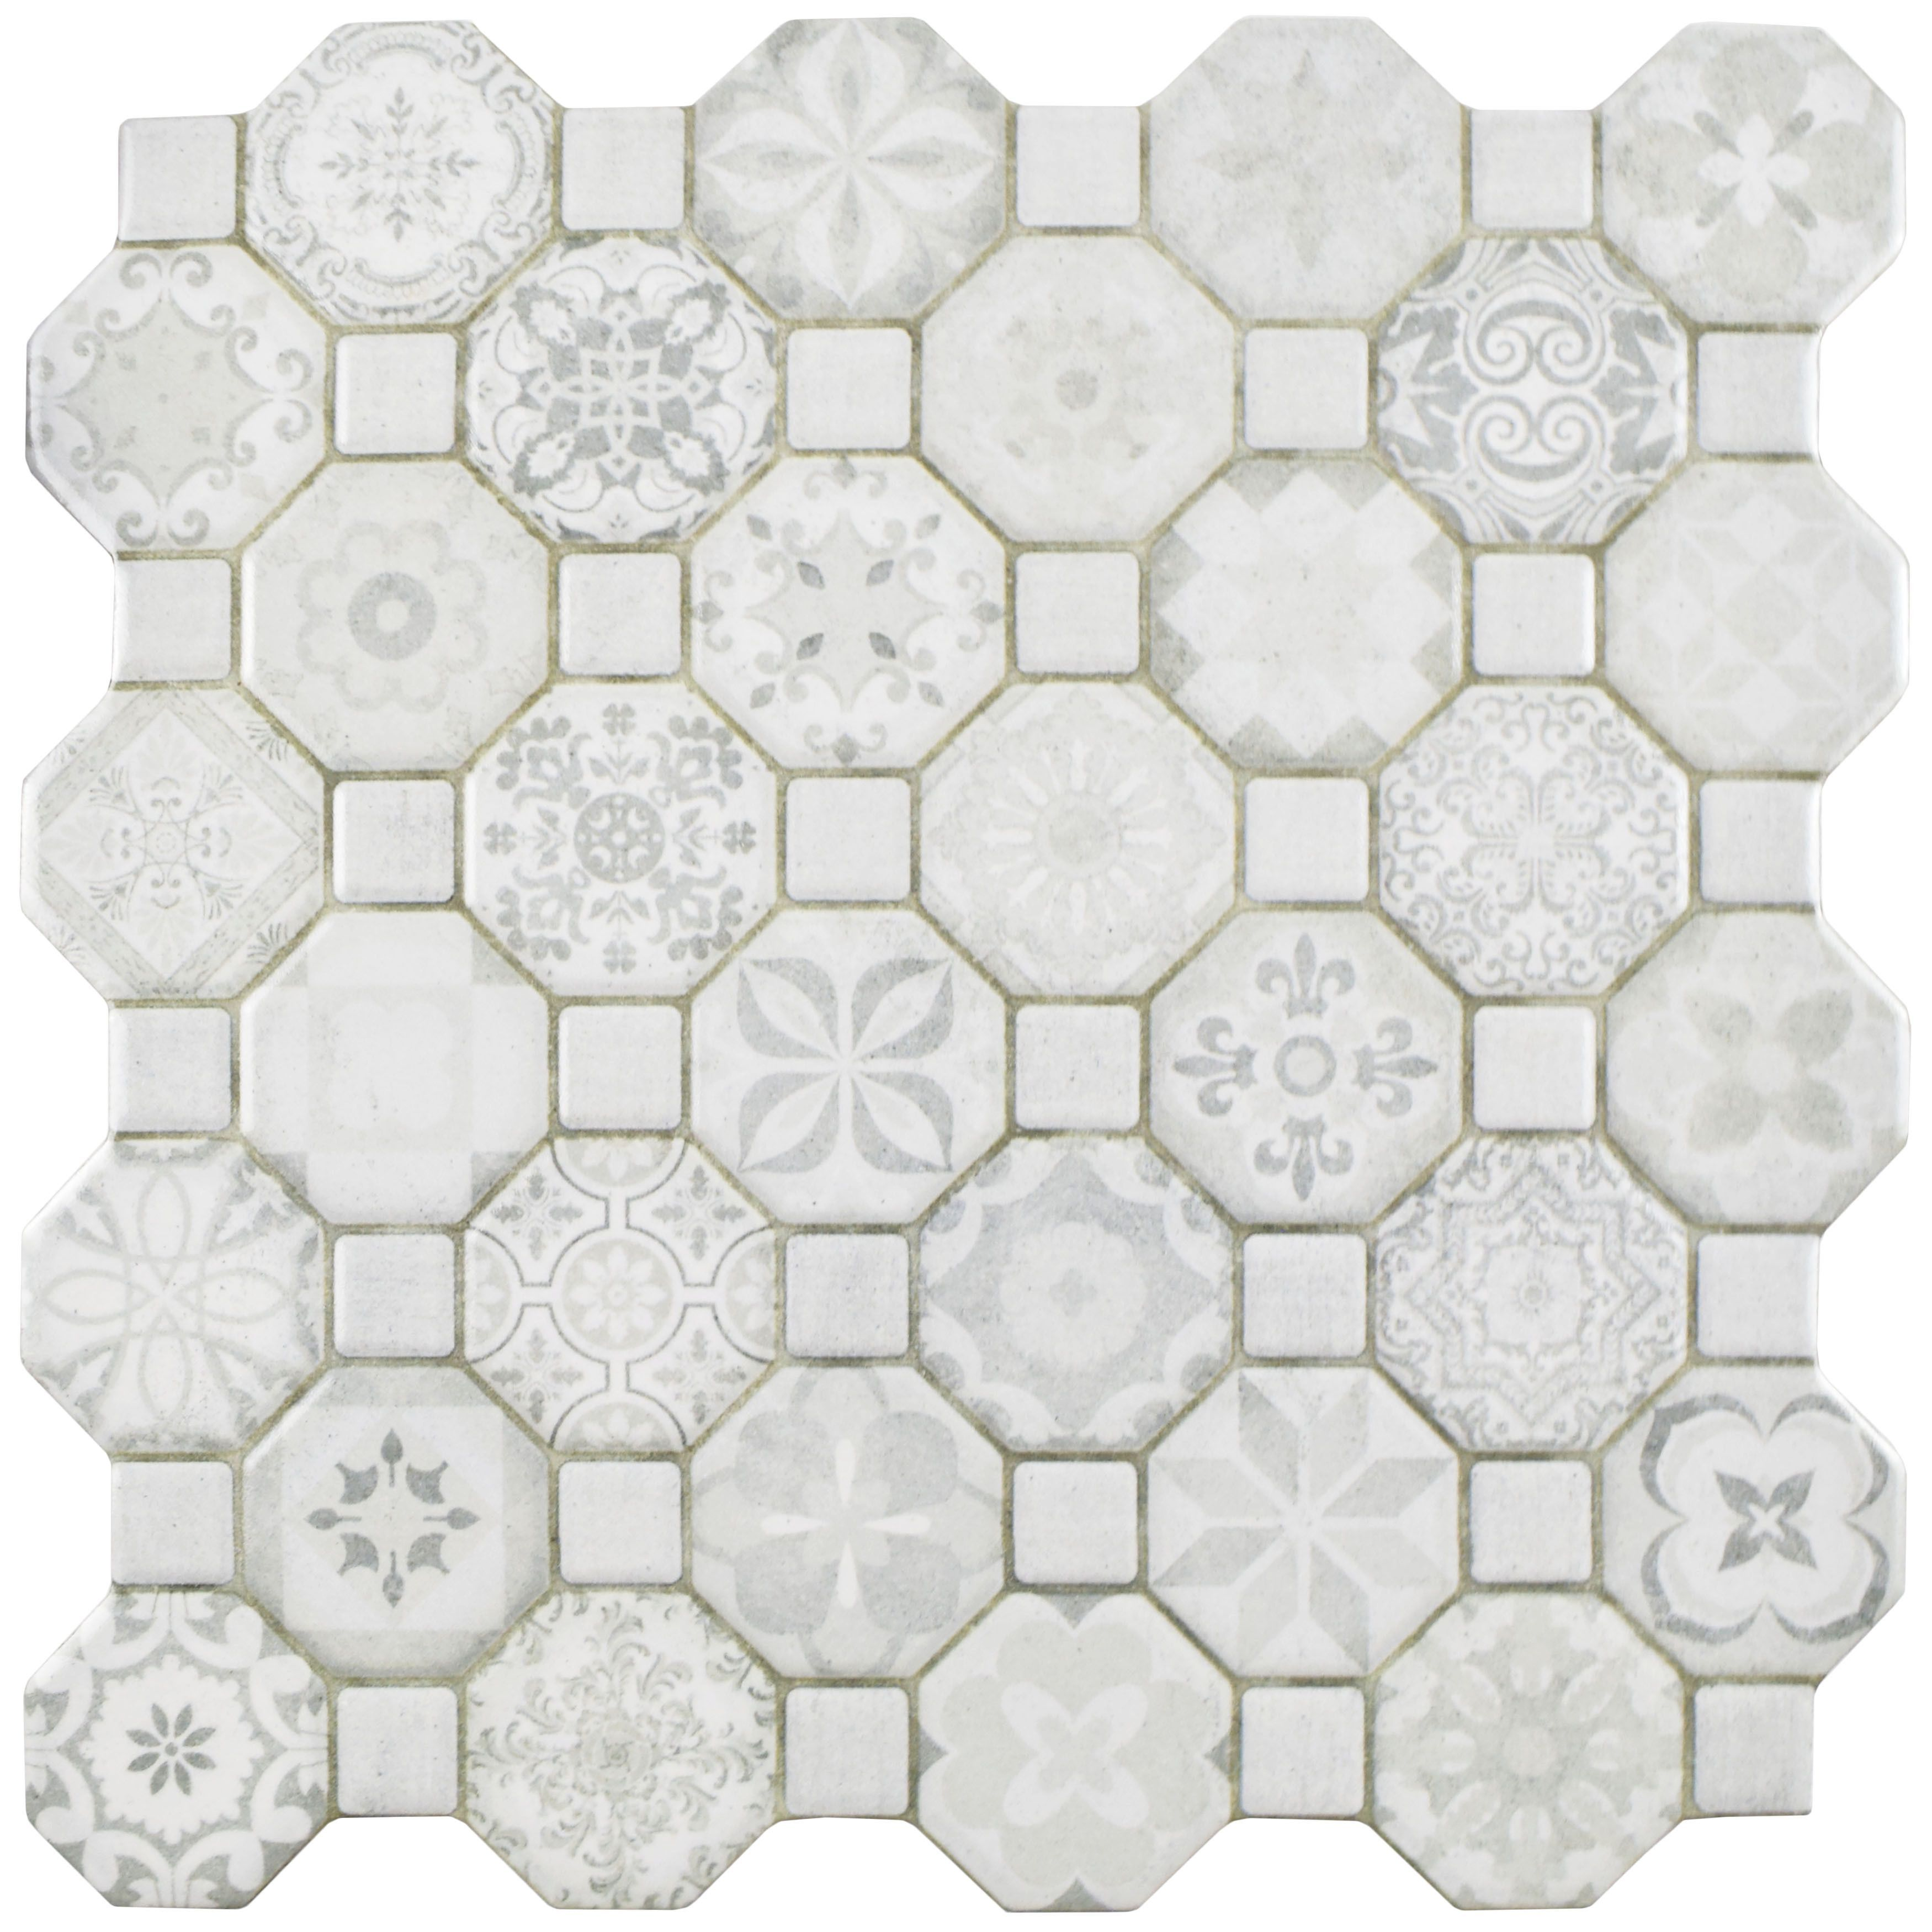 Somertile 12 25x12 25 Inch Tesseract White Ceramic Floor And Wall Tile 13 Tiles 14 11 Sqft Ceramic Floor Floor And Wall Tile Tiles